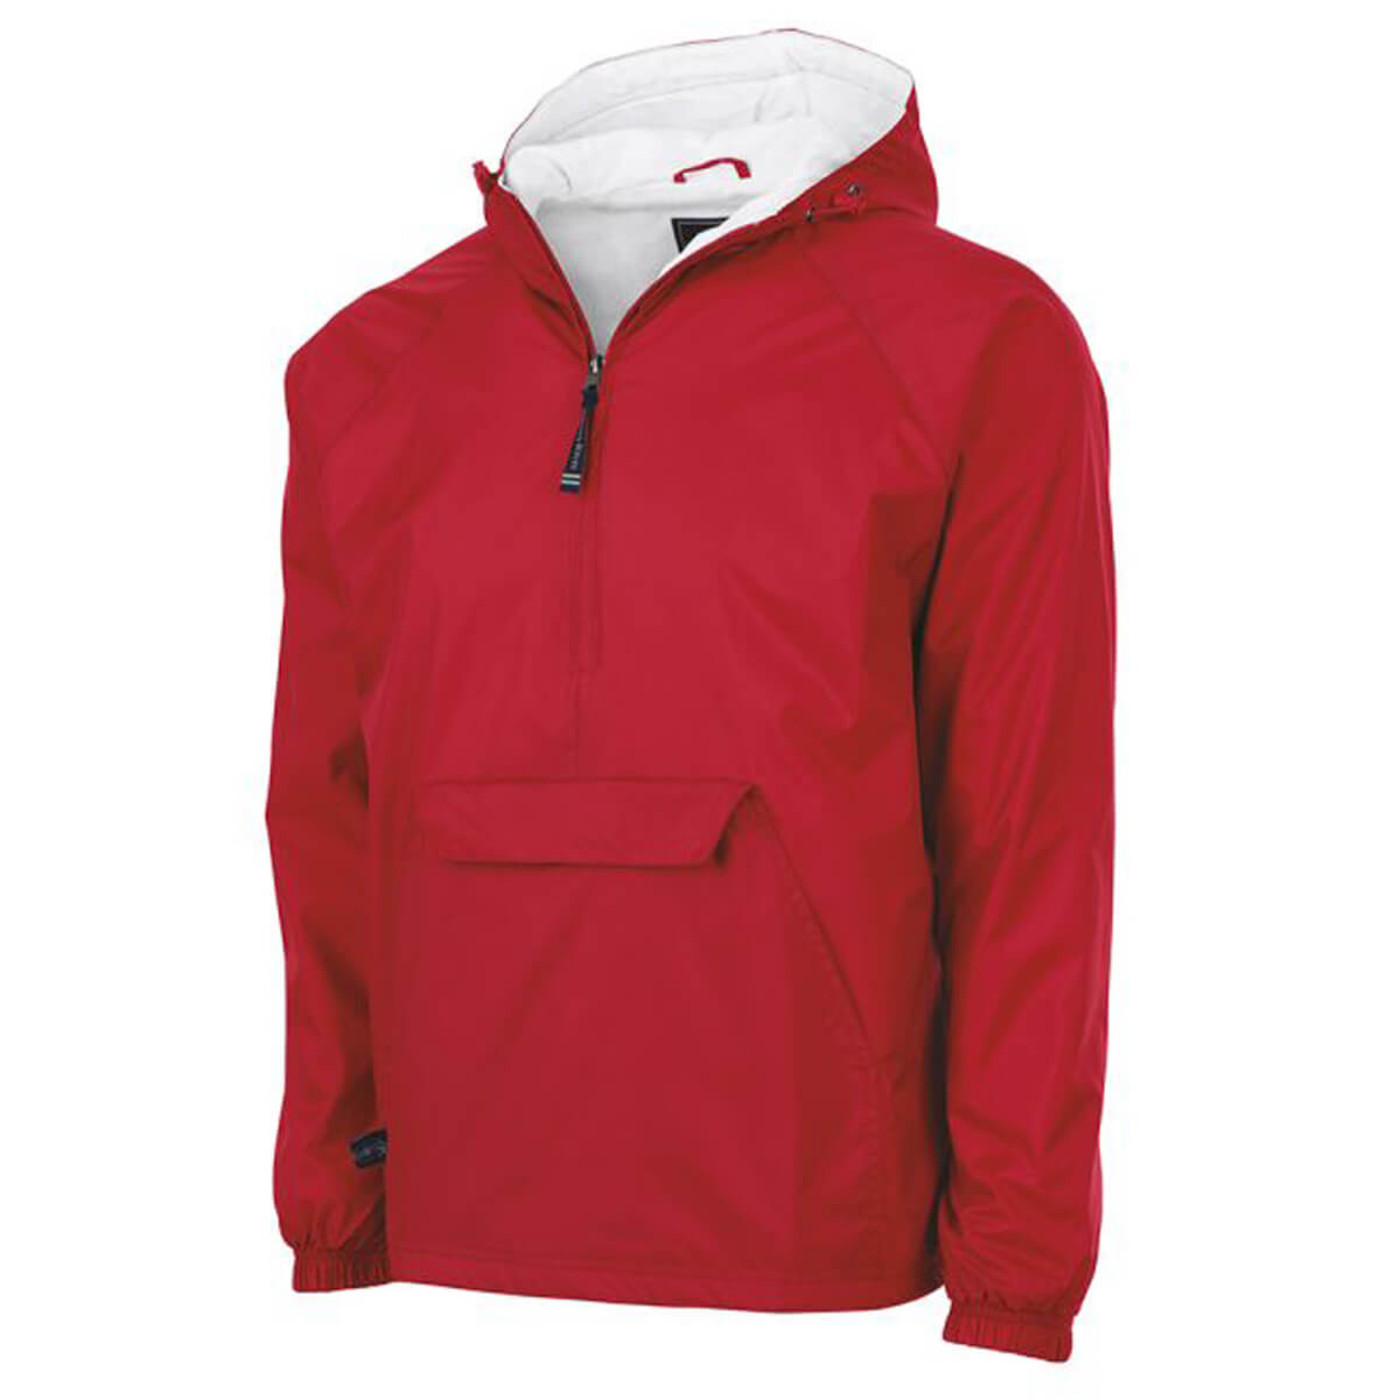 Charles River Classic Pullover in Red Color